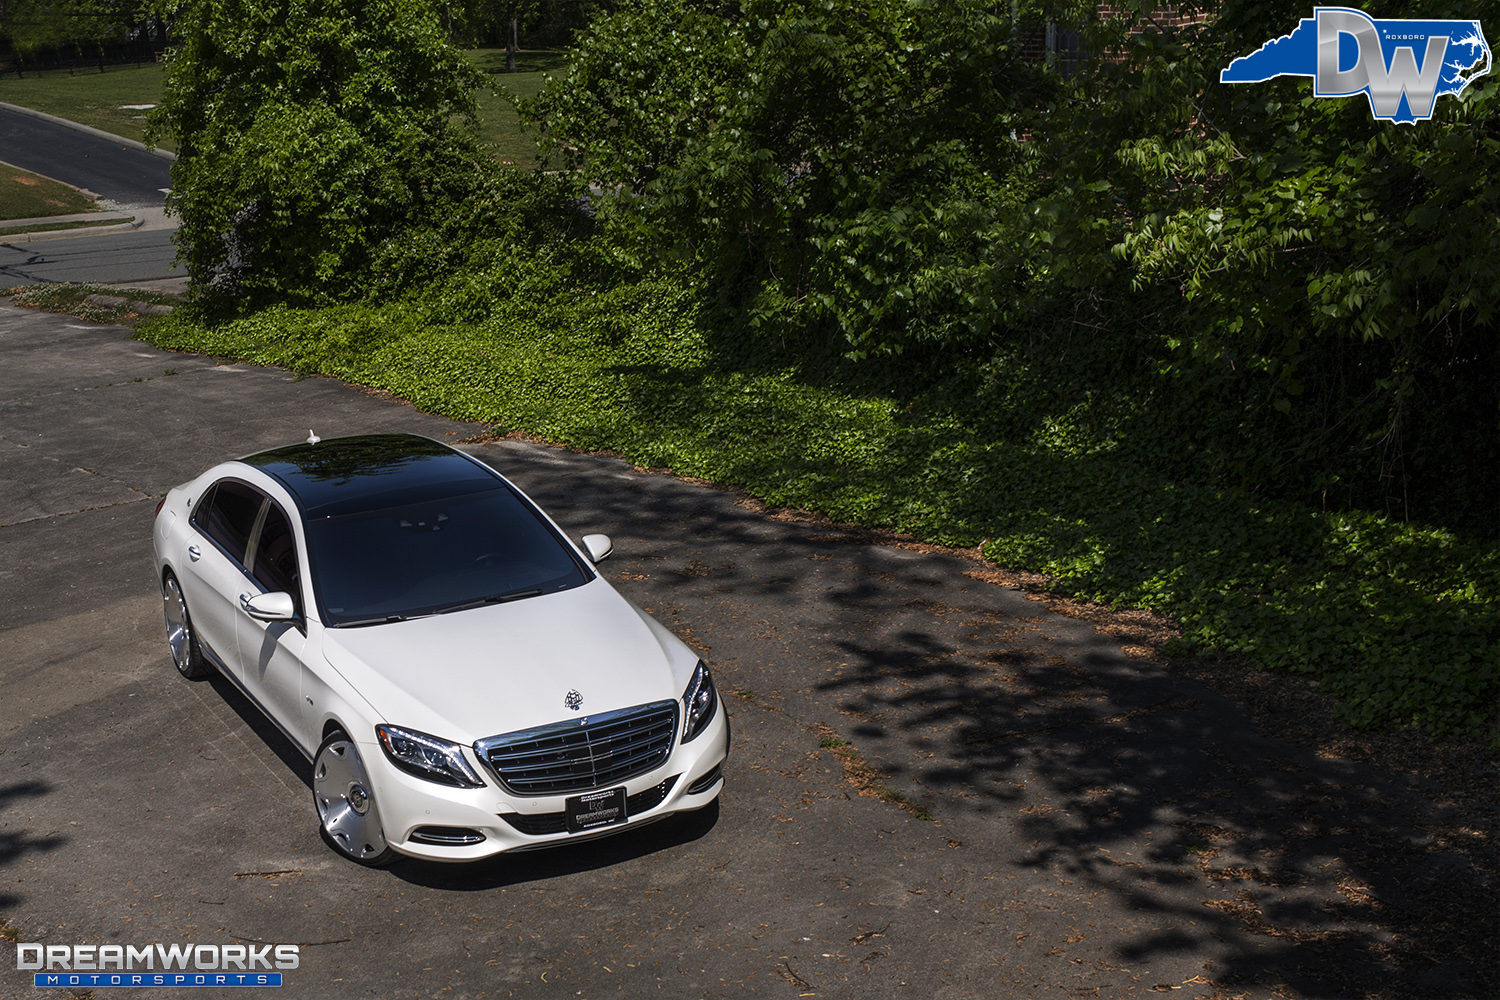 Maybach-S600-Chris-Wilcox-Dreamworks-Motorsports-15.jpg